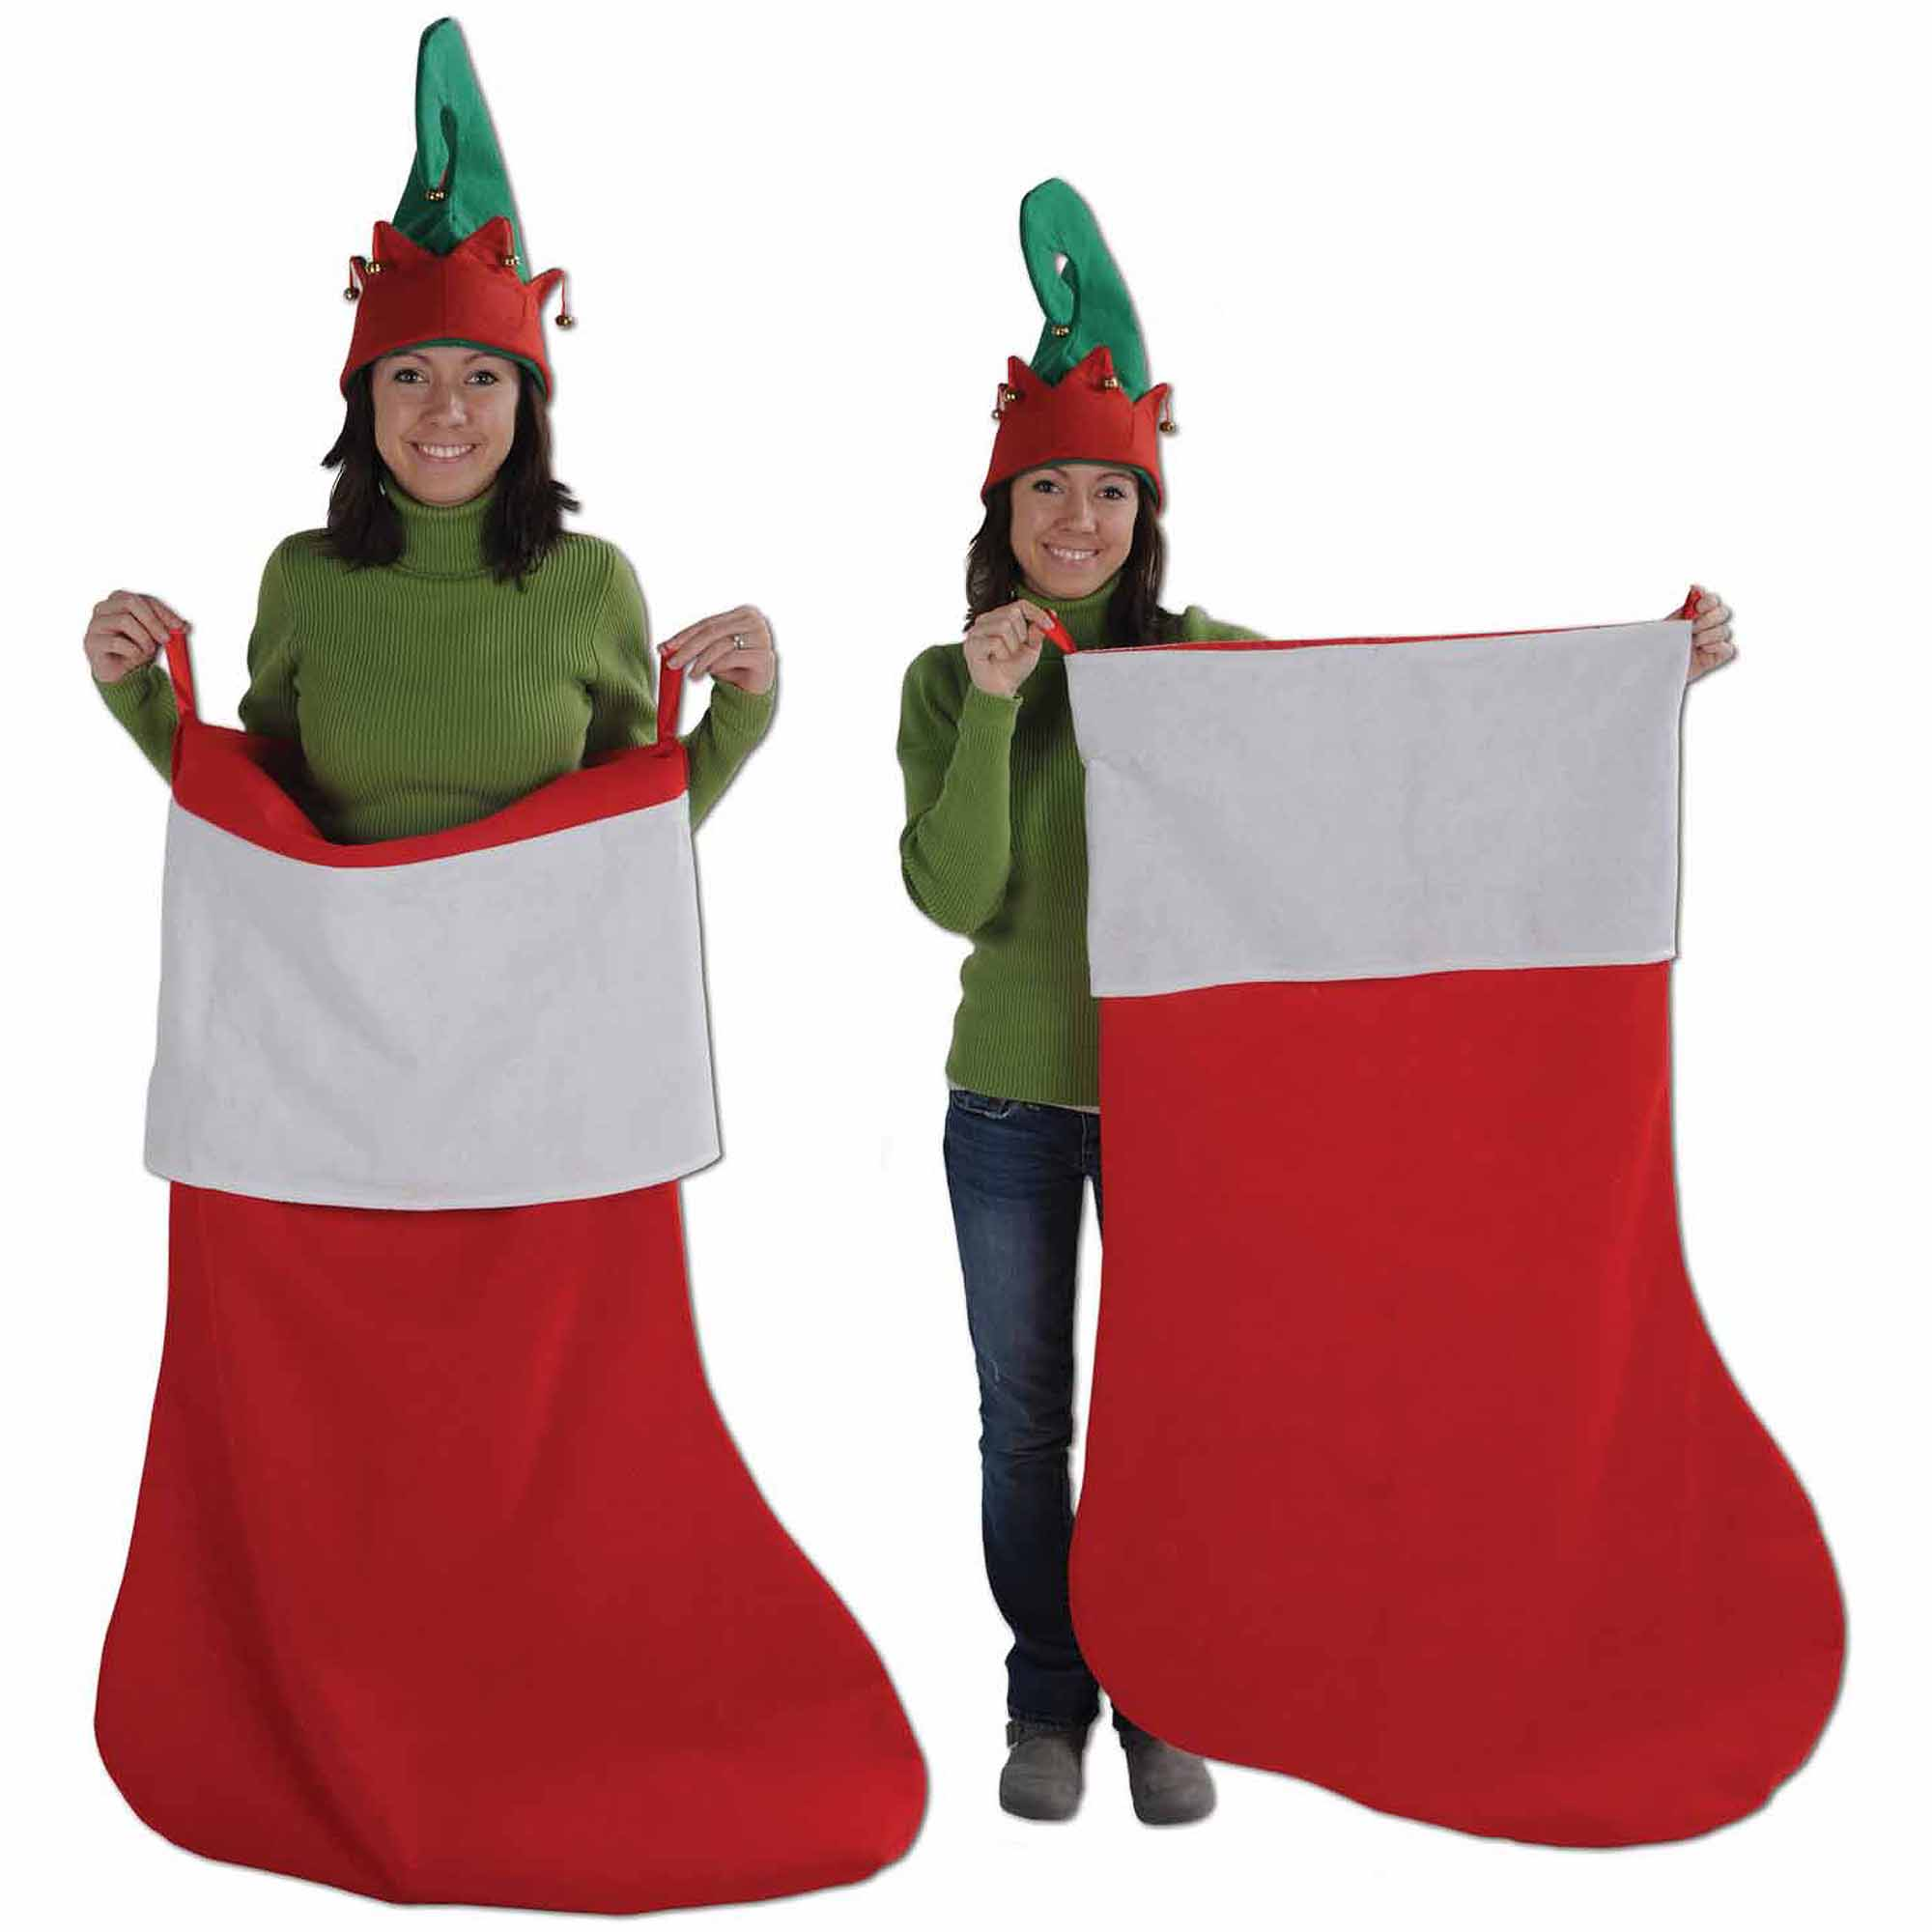 Jumbo Christmas Stocking - Walmart.com